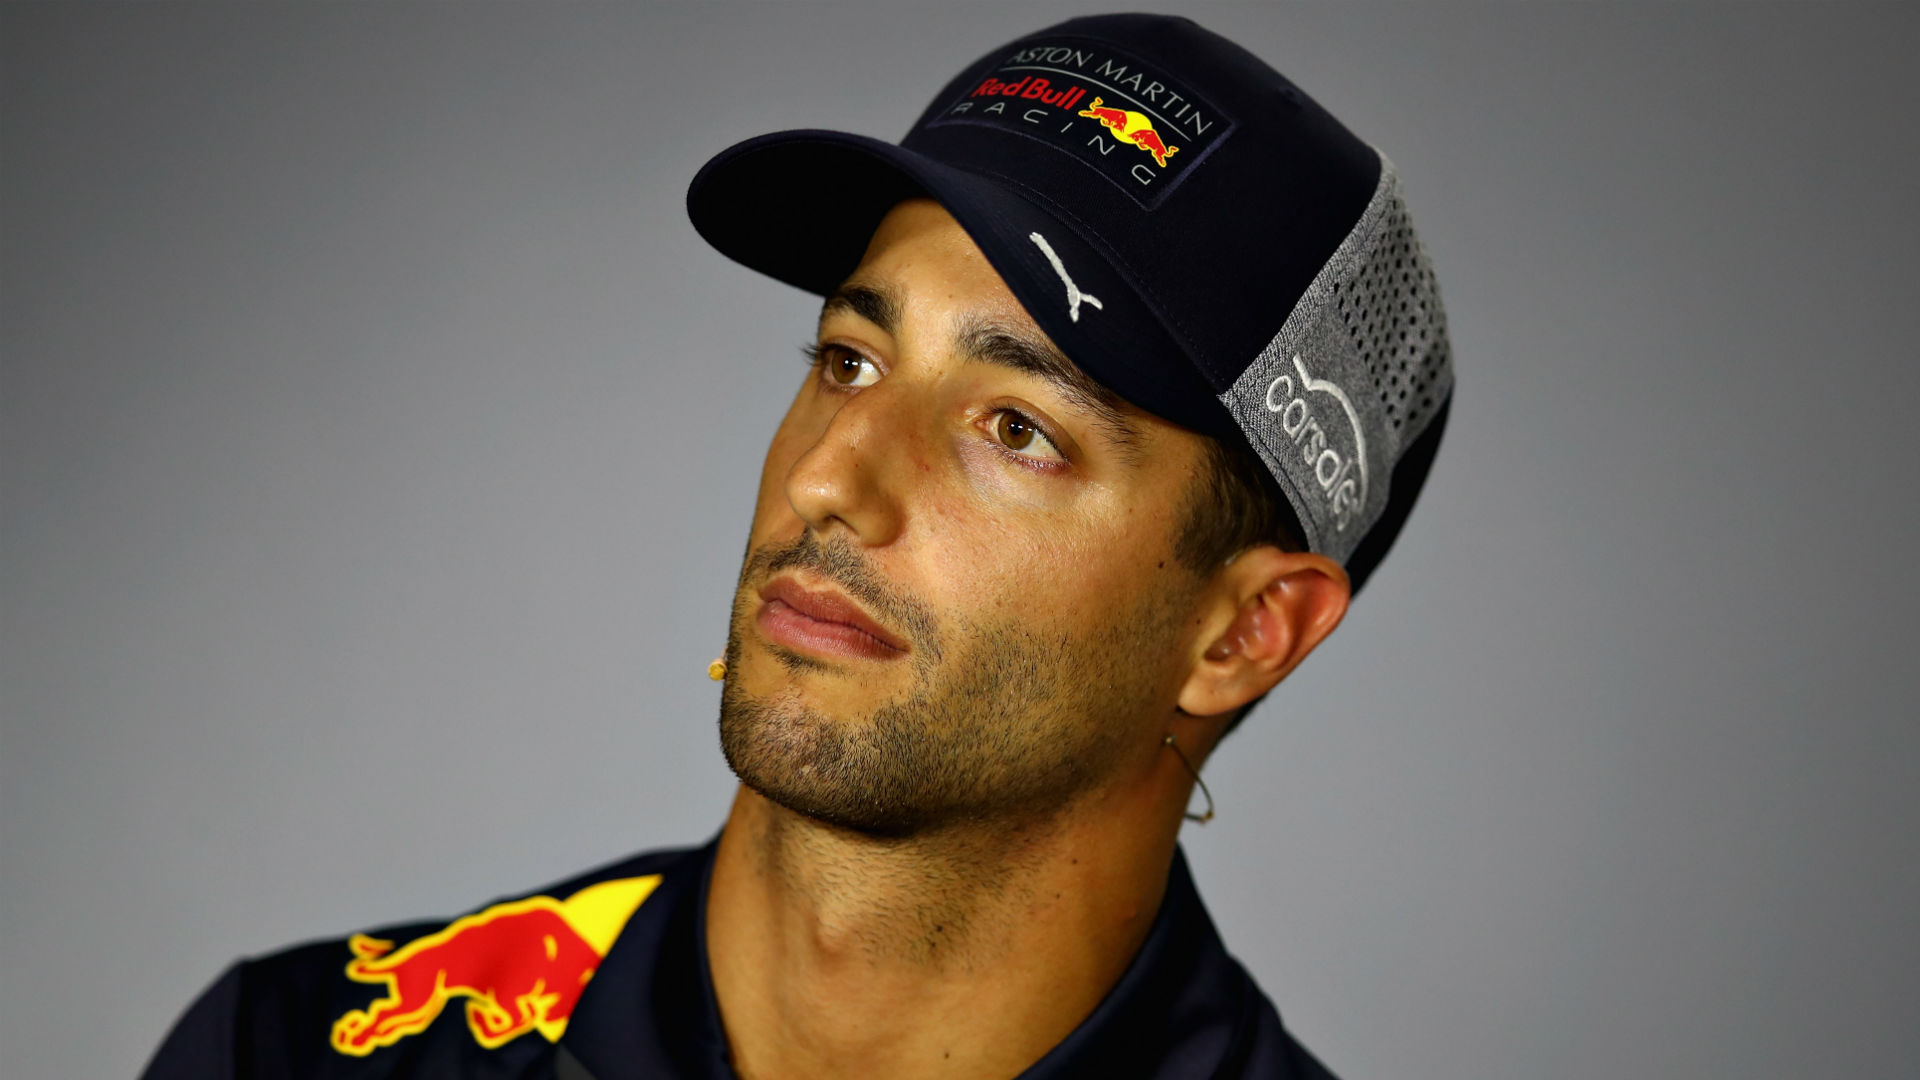 Ricciardo denies speaking to Ferrari about 2019 deal